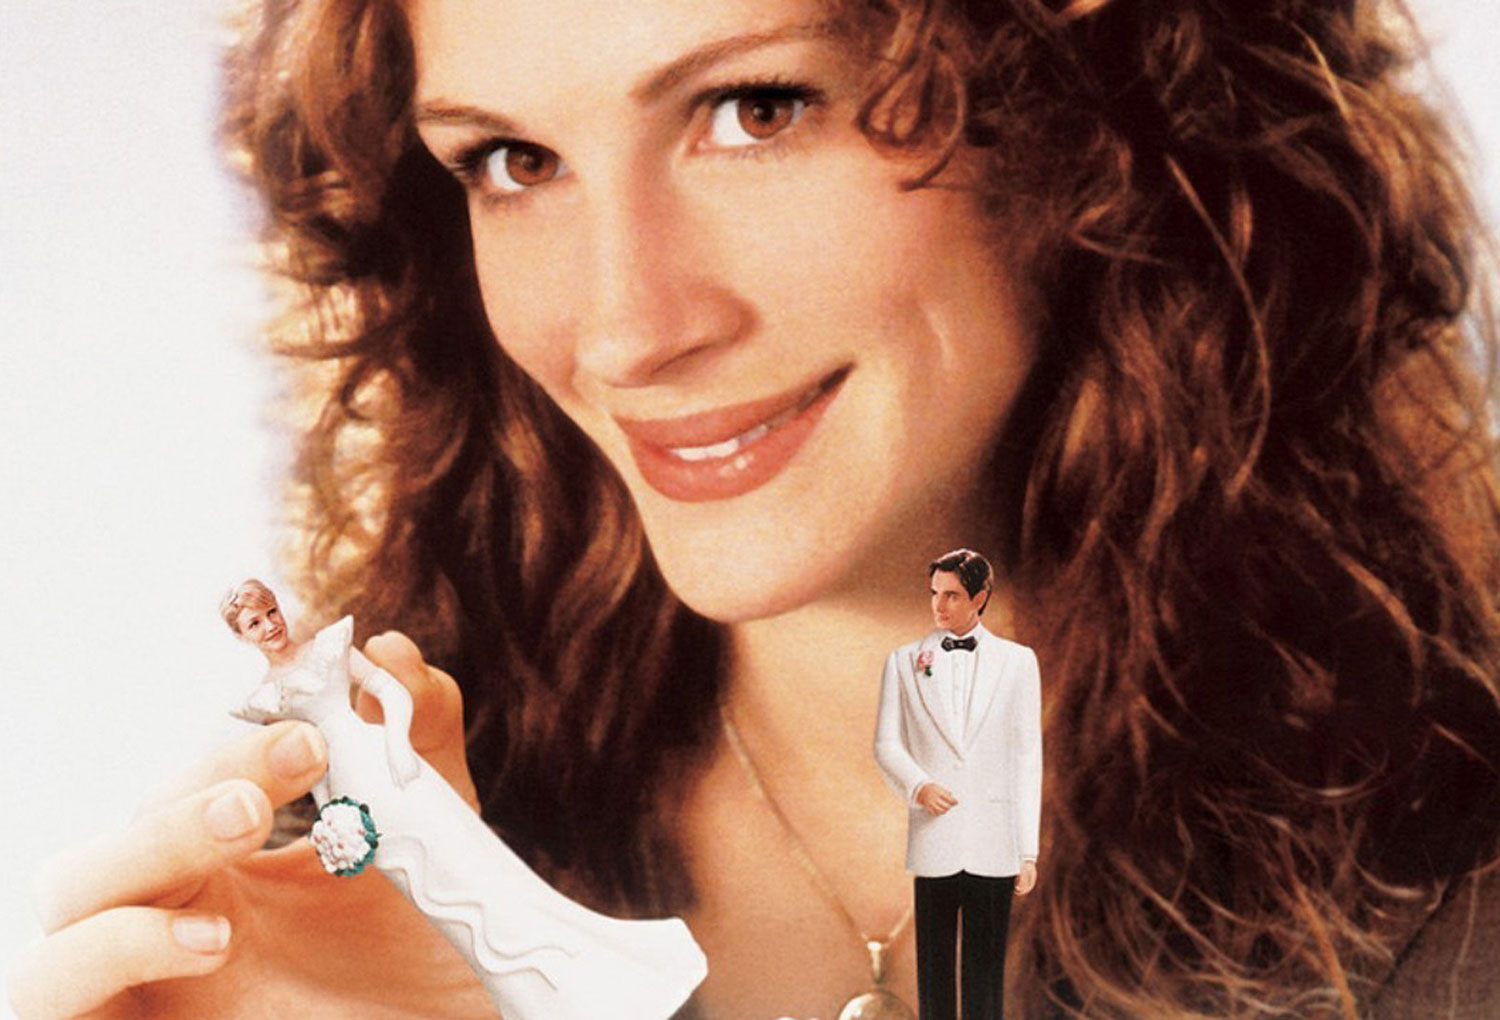 Childhood best friends Julianne and Michael (Julia Roberts and Dermot Mulroney) agree to marry each other if neither of them wed before turning 28. But less than a month before her 28th birthday he tells her he's getting married in four days – way to give her advance notice, Michael! To top it off, the […]